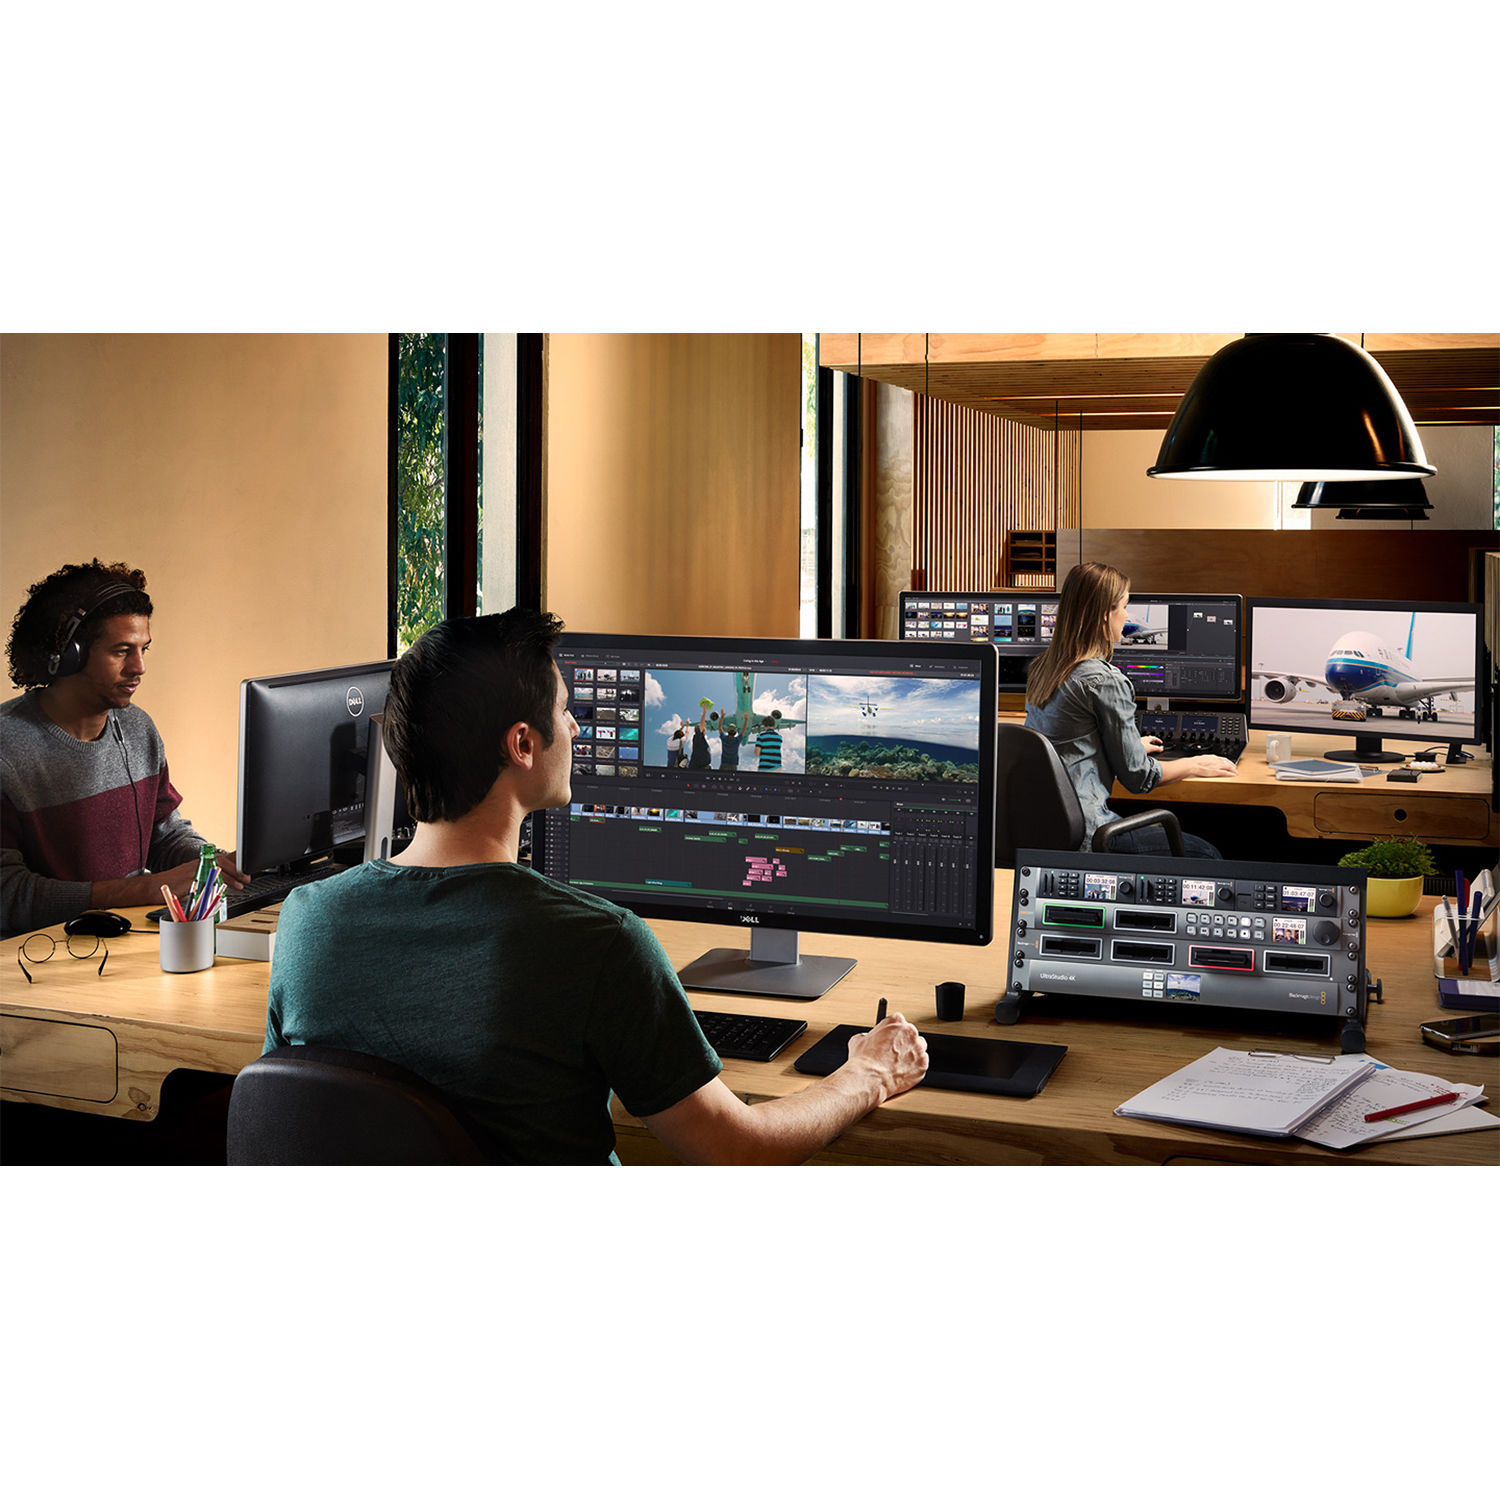 B&H Photo PC Pro Workstation Custom HP Z4 G4 Turnkey with DaVinci Resolve  15 Studio